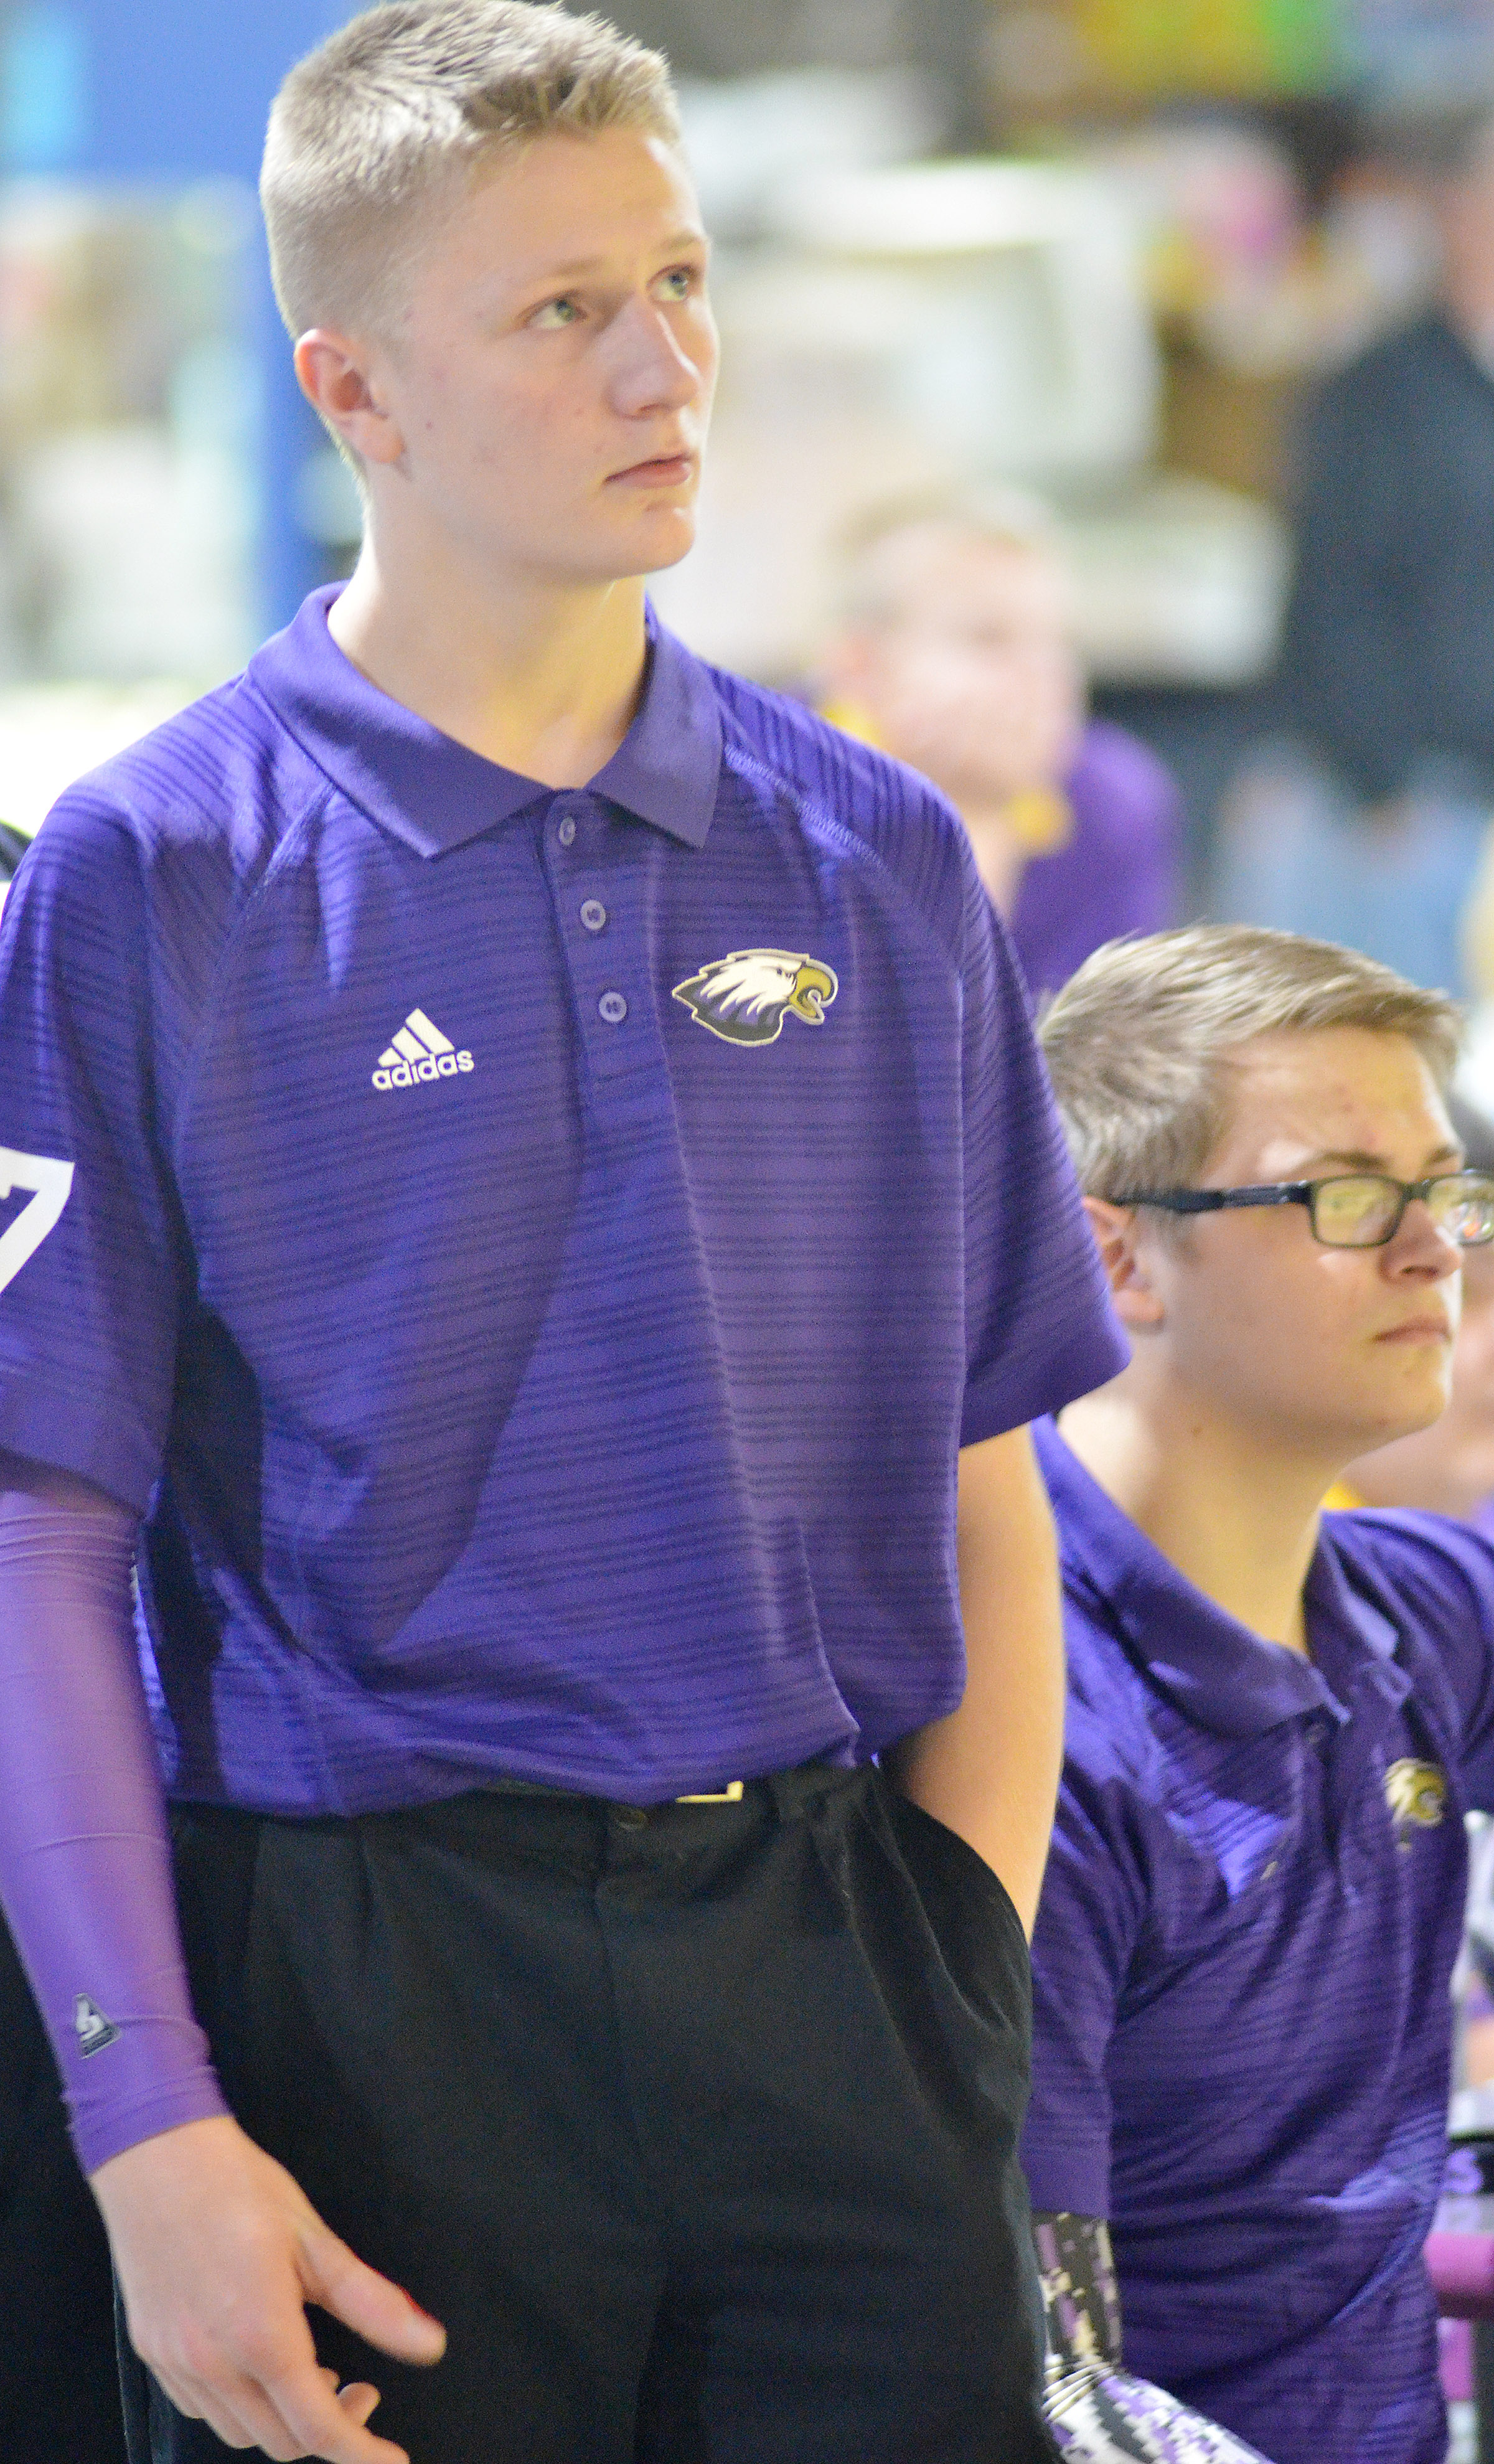 CHS freshman Jake Dicken watches his team's score.